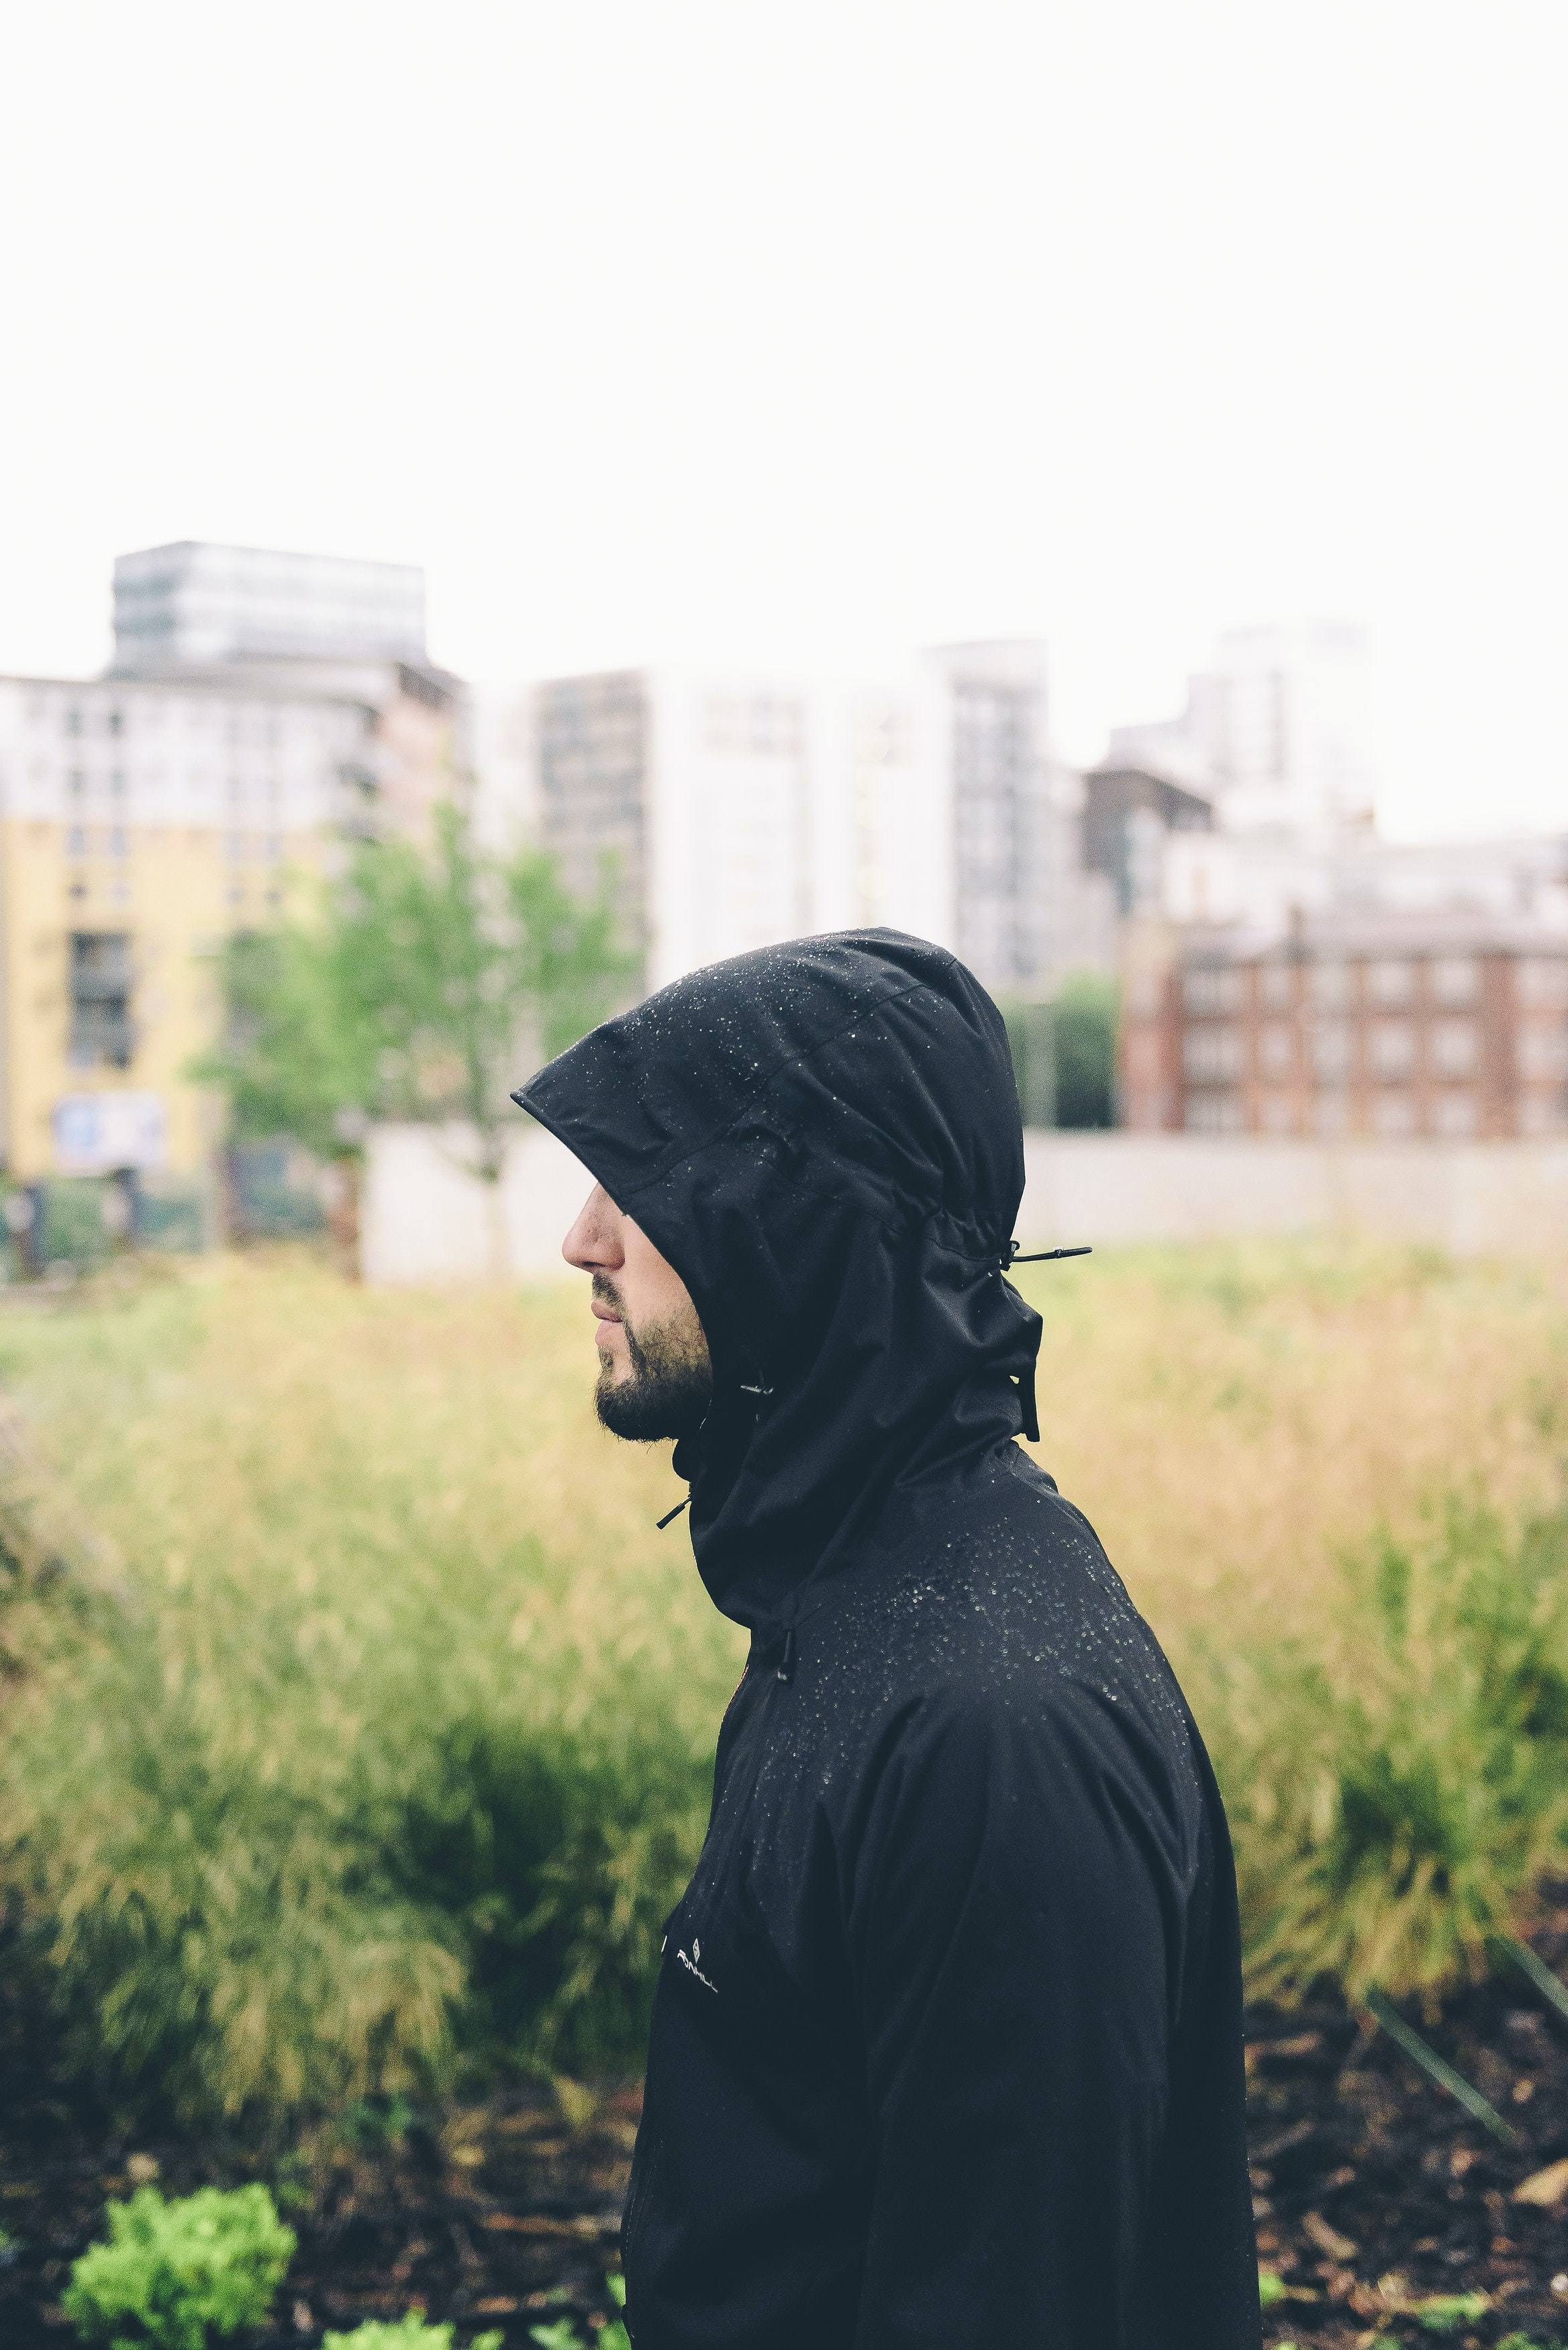 Profile of a man in a black hooded raincoat outside